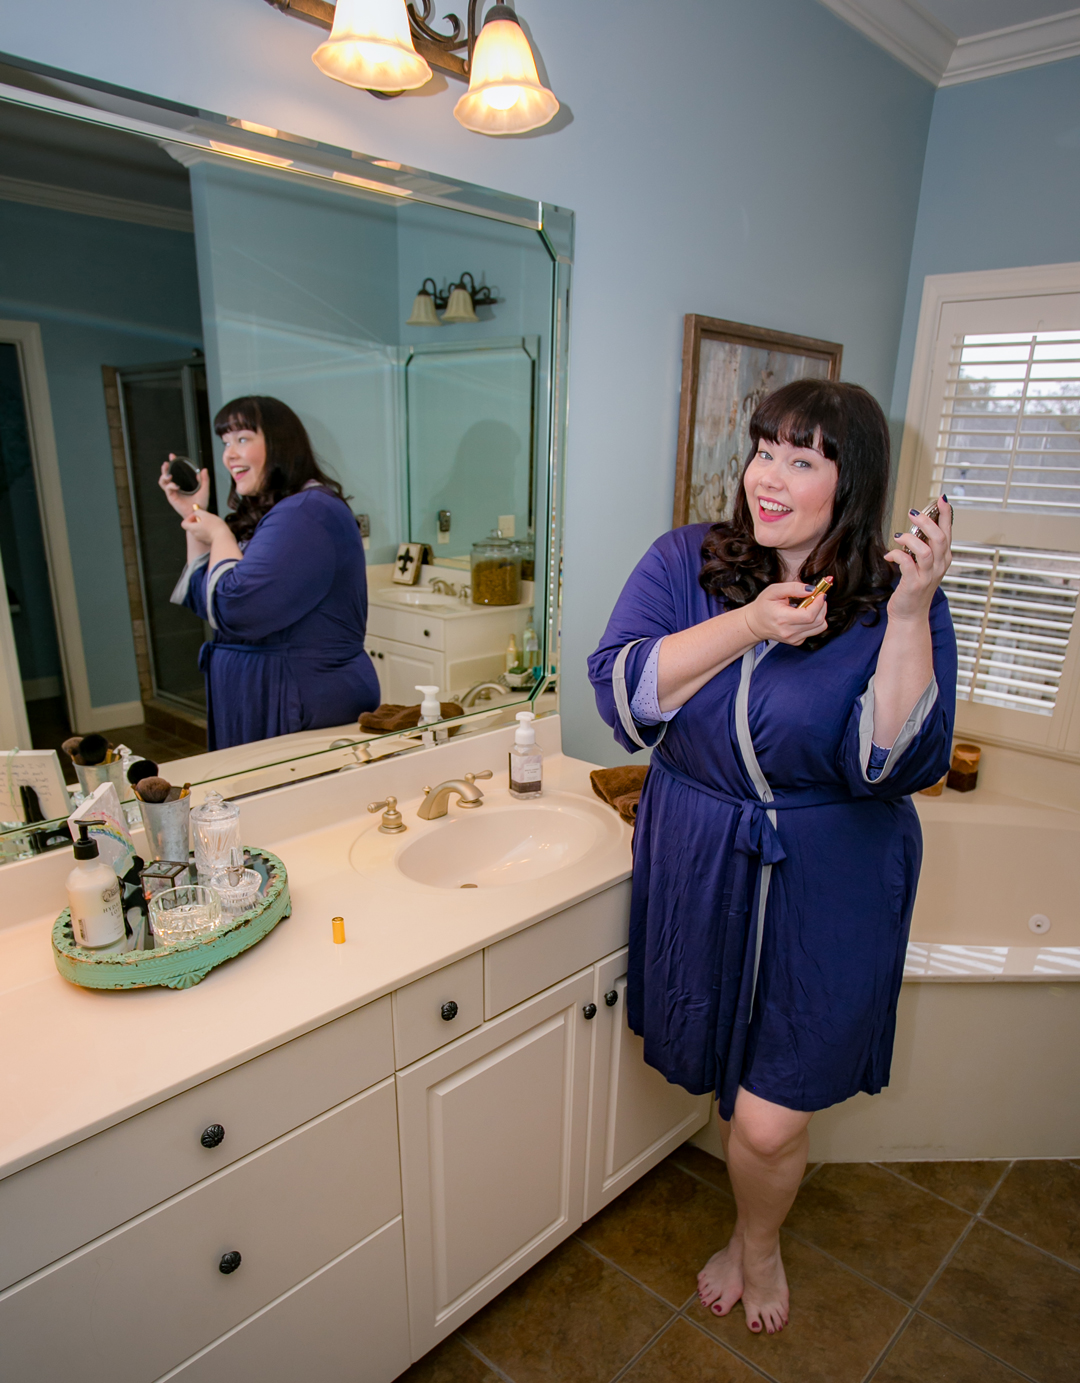 plus size pajamas, Kohl's, Simply Vera Vera Wang, Plus Size Style, Plus Size Fashion, Style Plus Curves, Chicago Blogger, Chicago Plus Size Blogger, Plus Size Blogger, Amber McCulloch